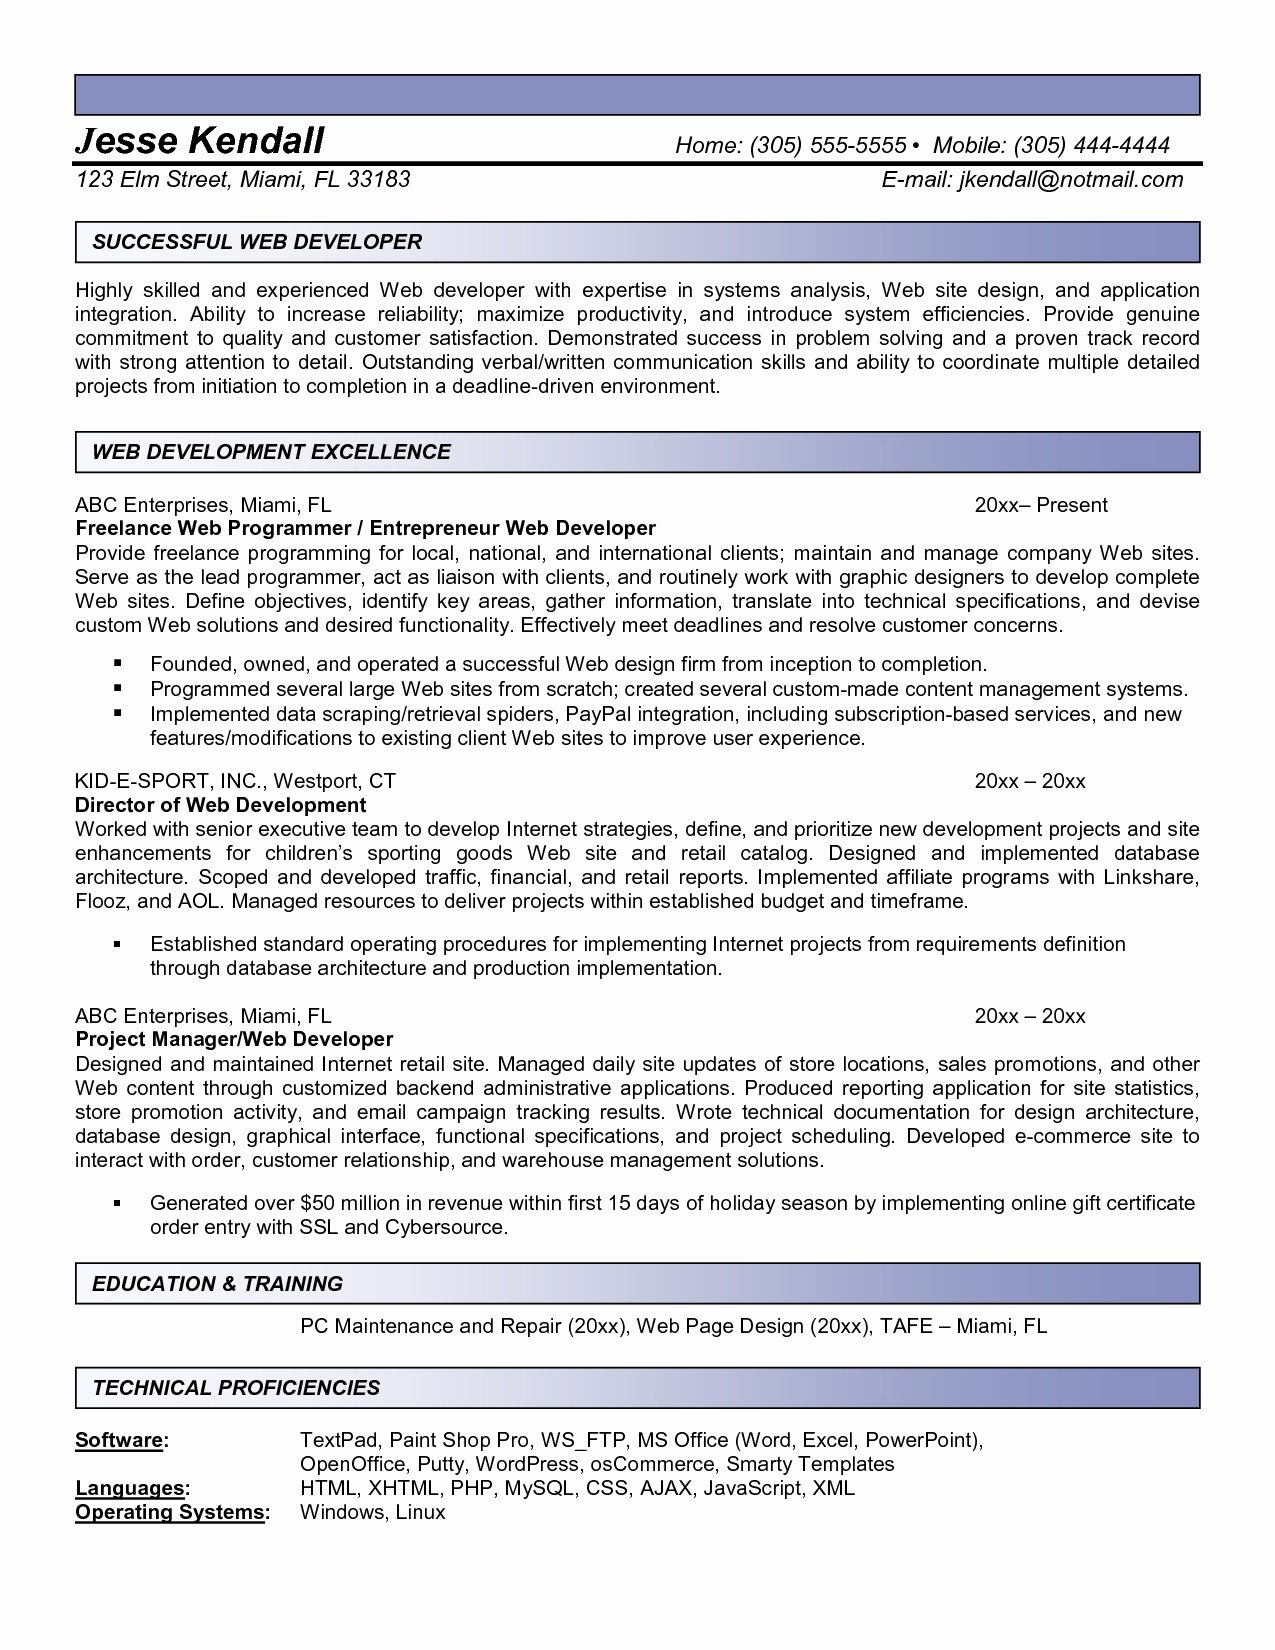 Experience Resume Sample for Web Developer Bongdaao